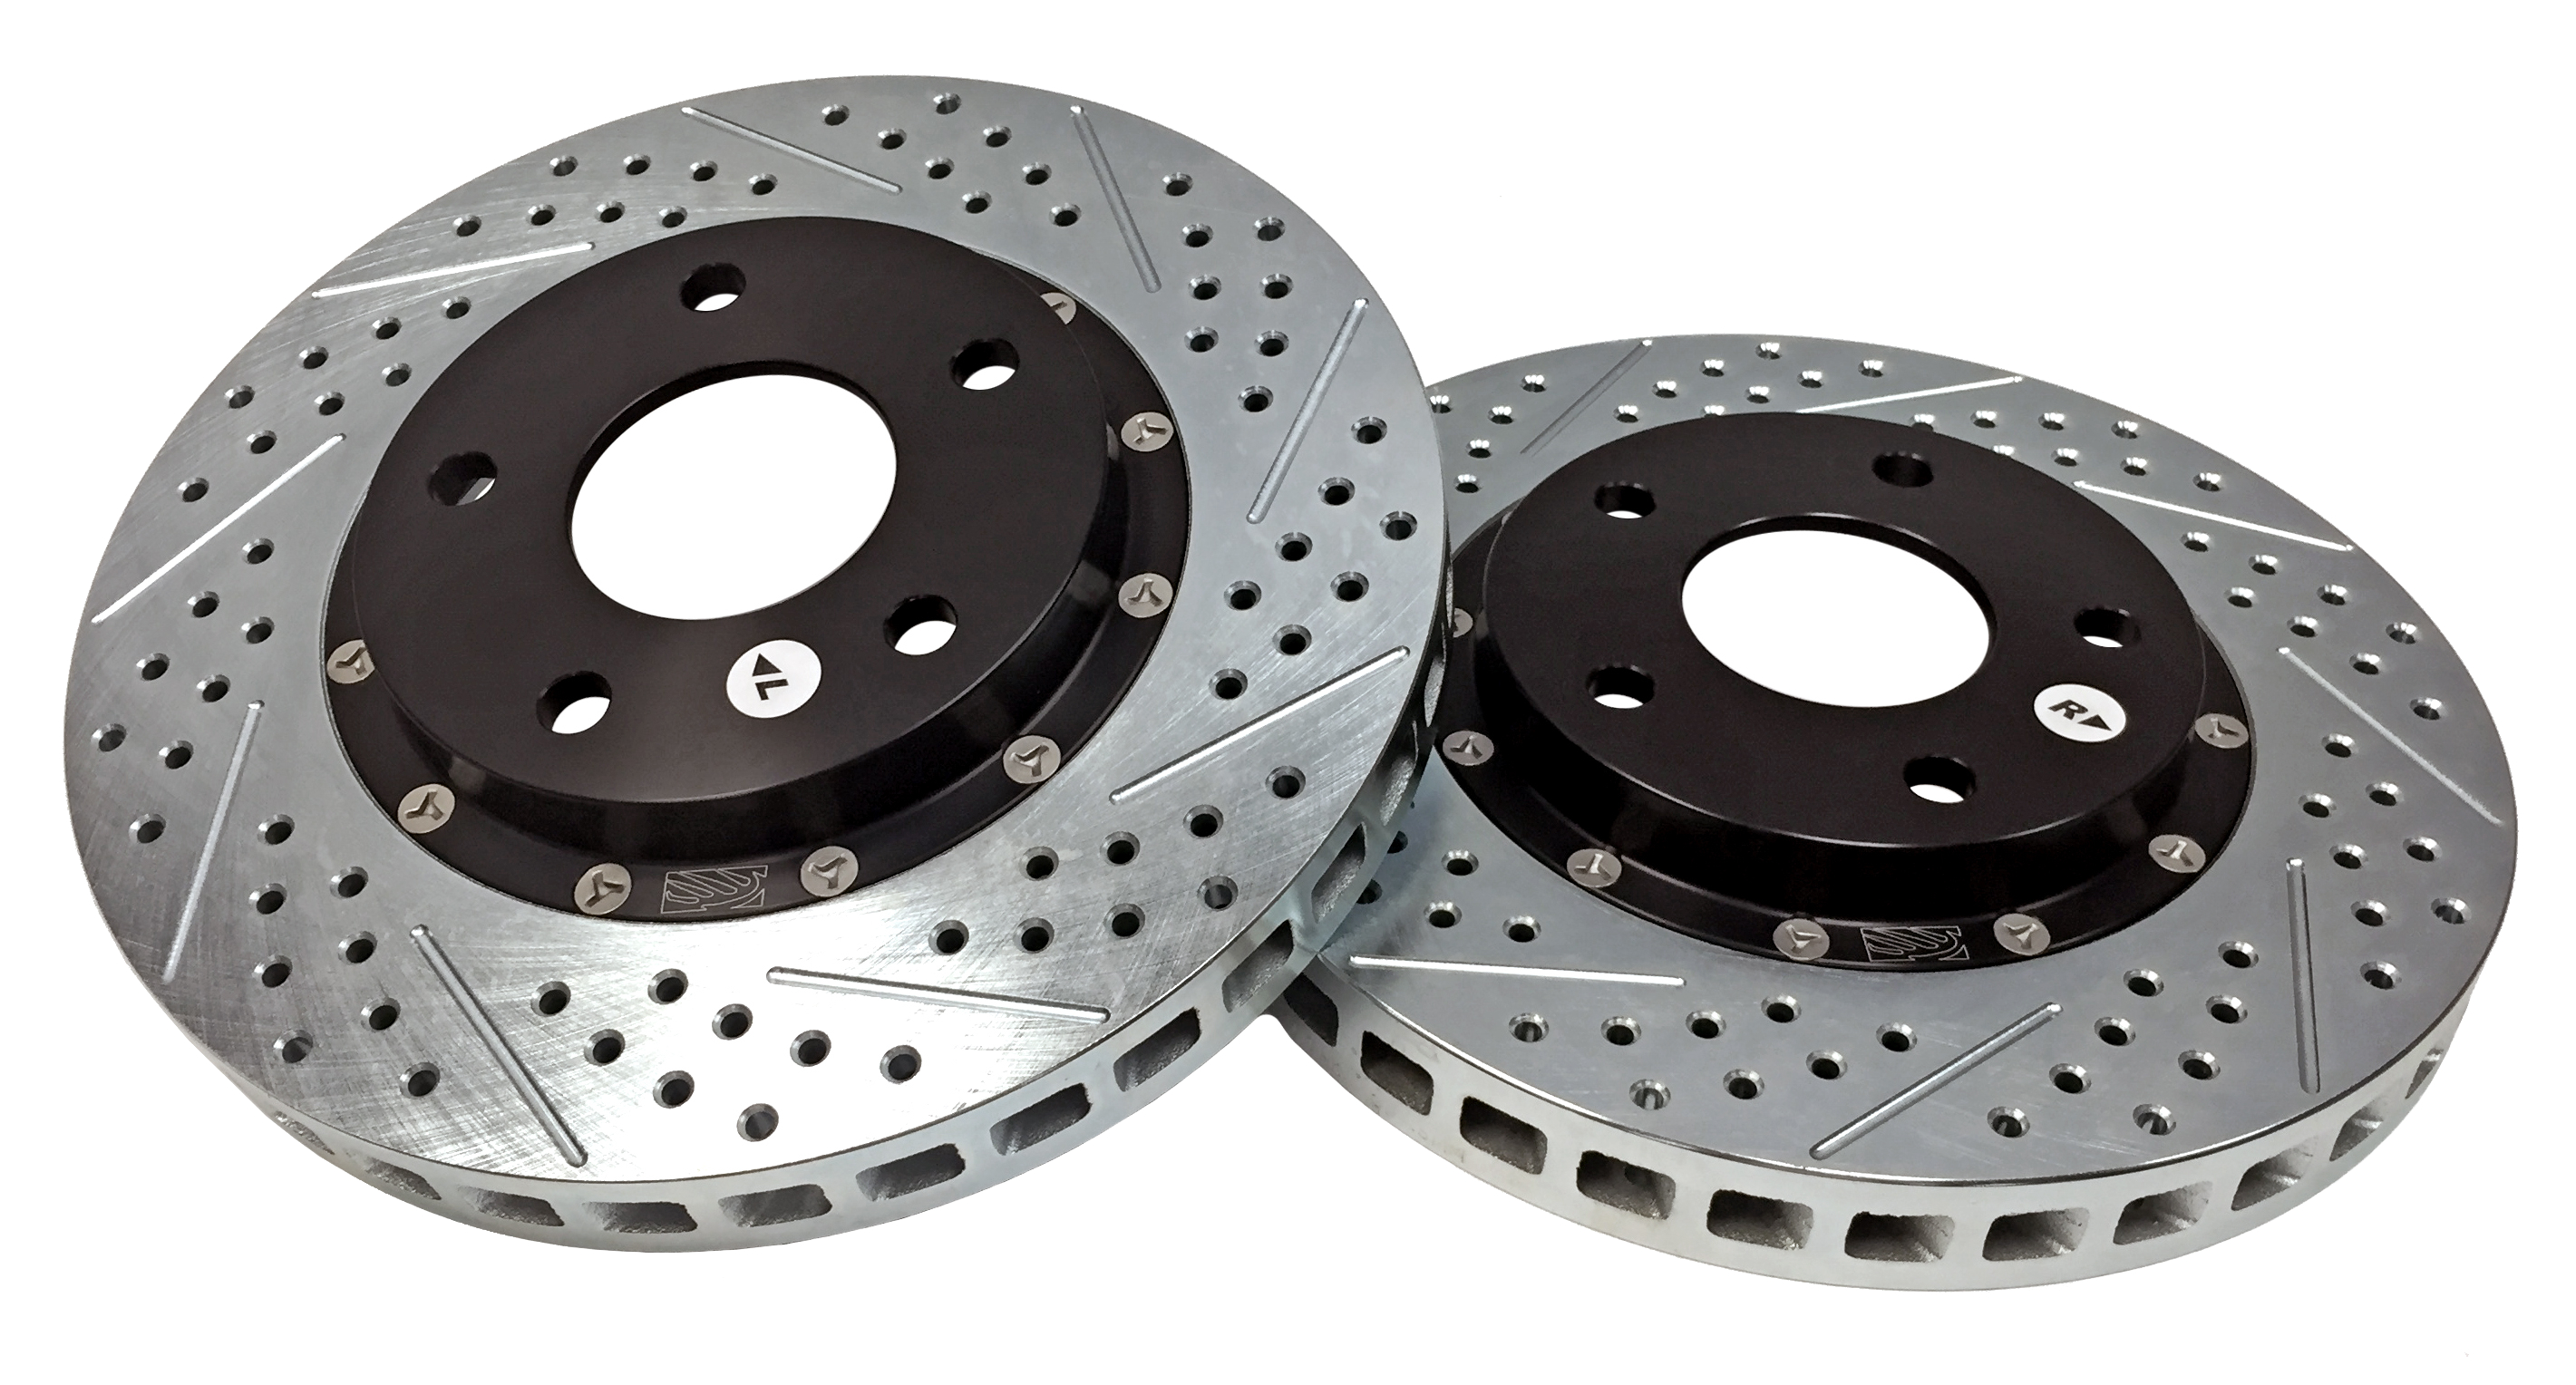 2010 Chevrolet Camaro SS Front Brake Components EradiSpeed+ Rotors  SDZ